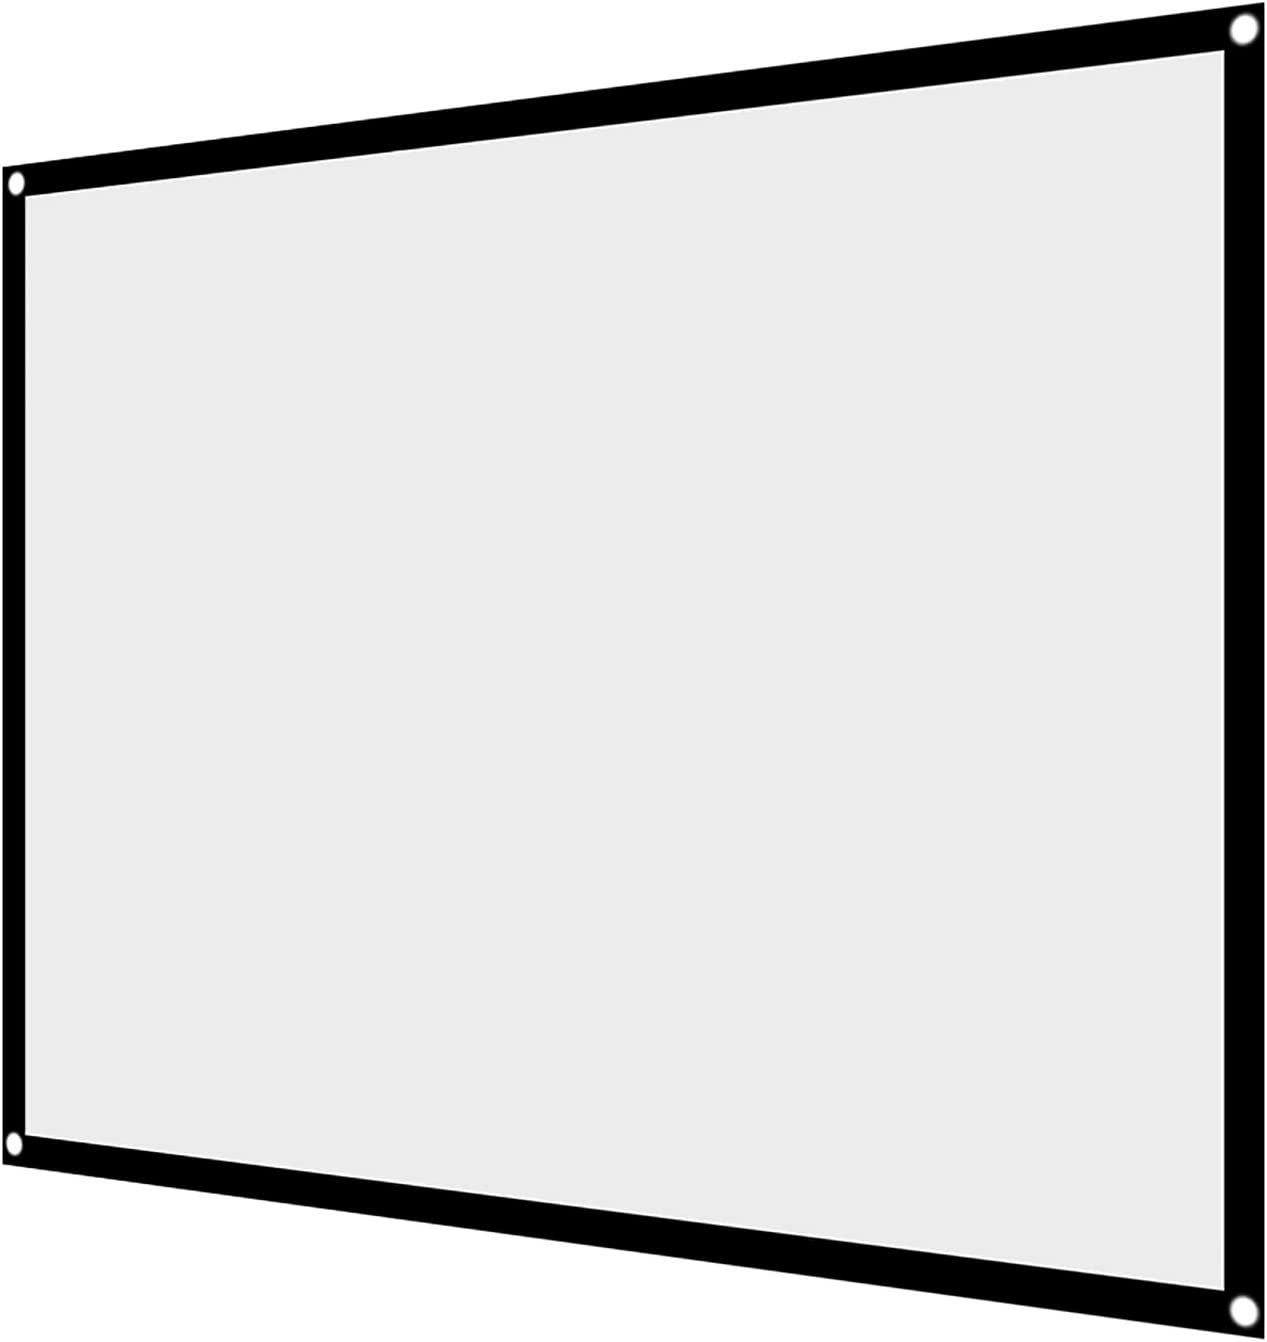 menfad Projector Screen, 60-100 Inch Portable Foldable Non-Crease White Projector Curtain Projection Screen 4:3, Materials/with Hanging Holes/Support Forward or Reverse Projection(72 inches)